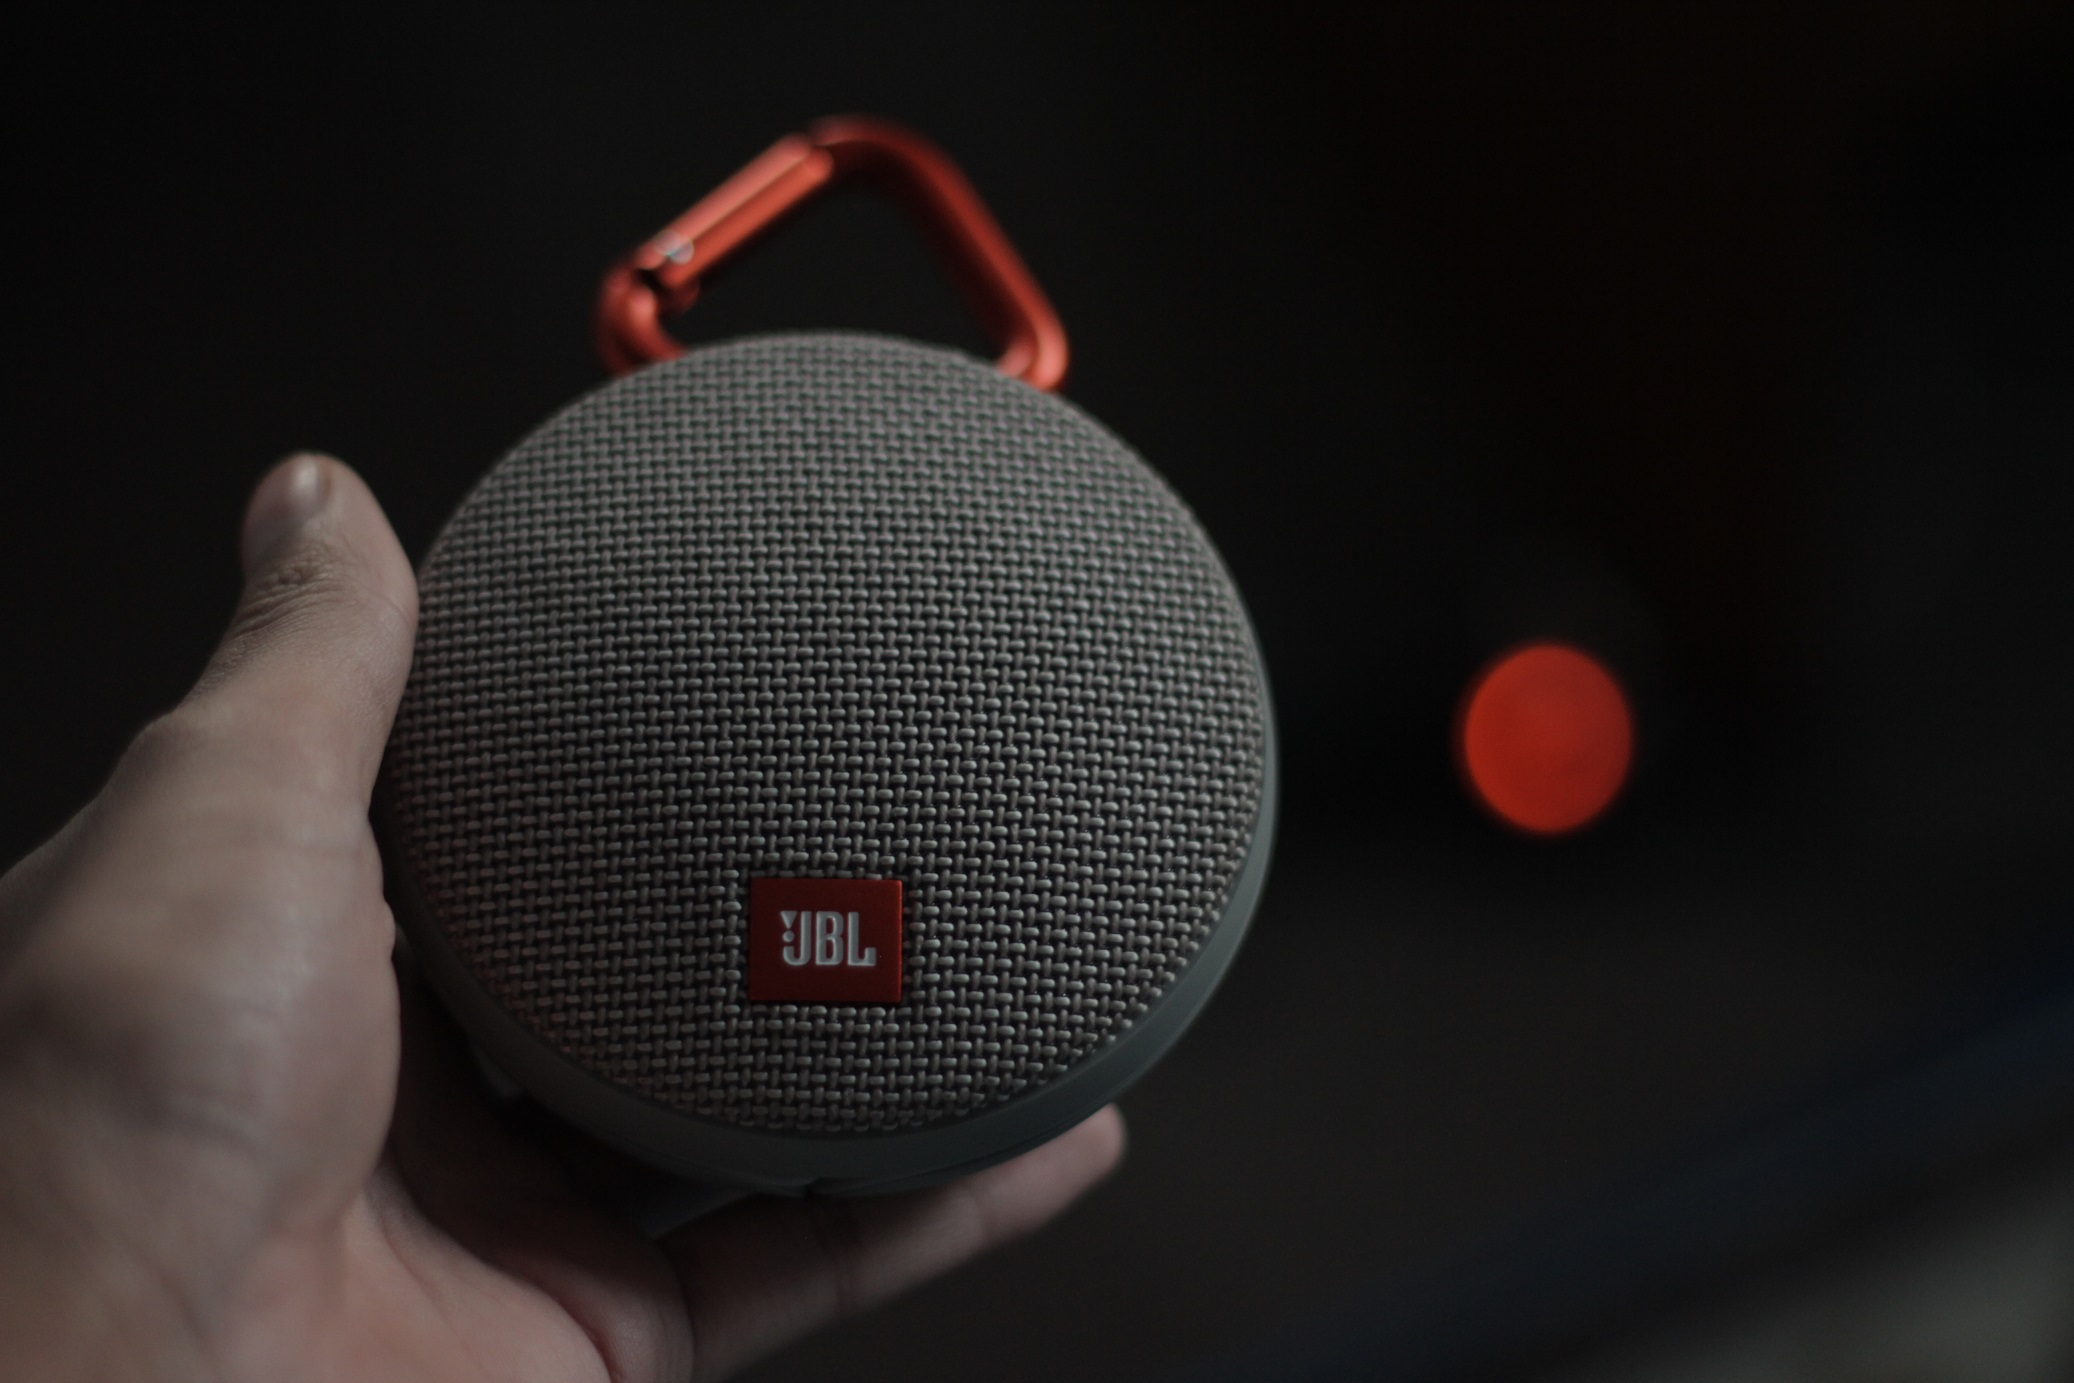 Jbl Clip 2 Review Best Portable Bt Speaker Gadgetbyte Nepal Bluetooth Grey There Are Five Different Control Buttons Along The Edge They Like Small Indents That Make It Easier To Find Even In Dark